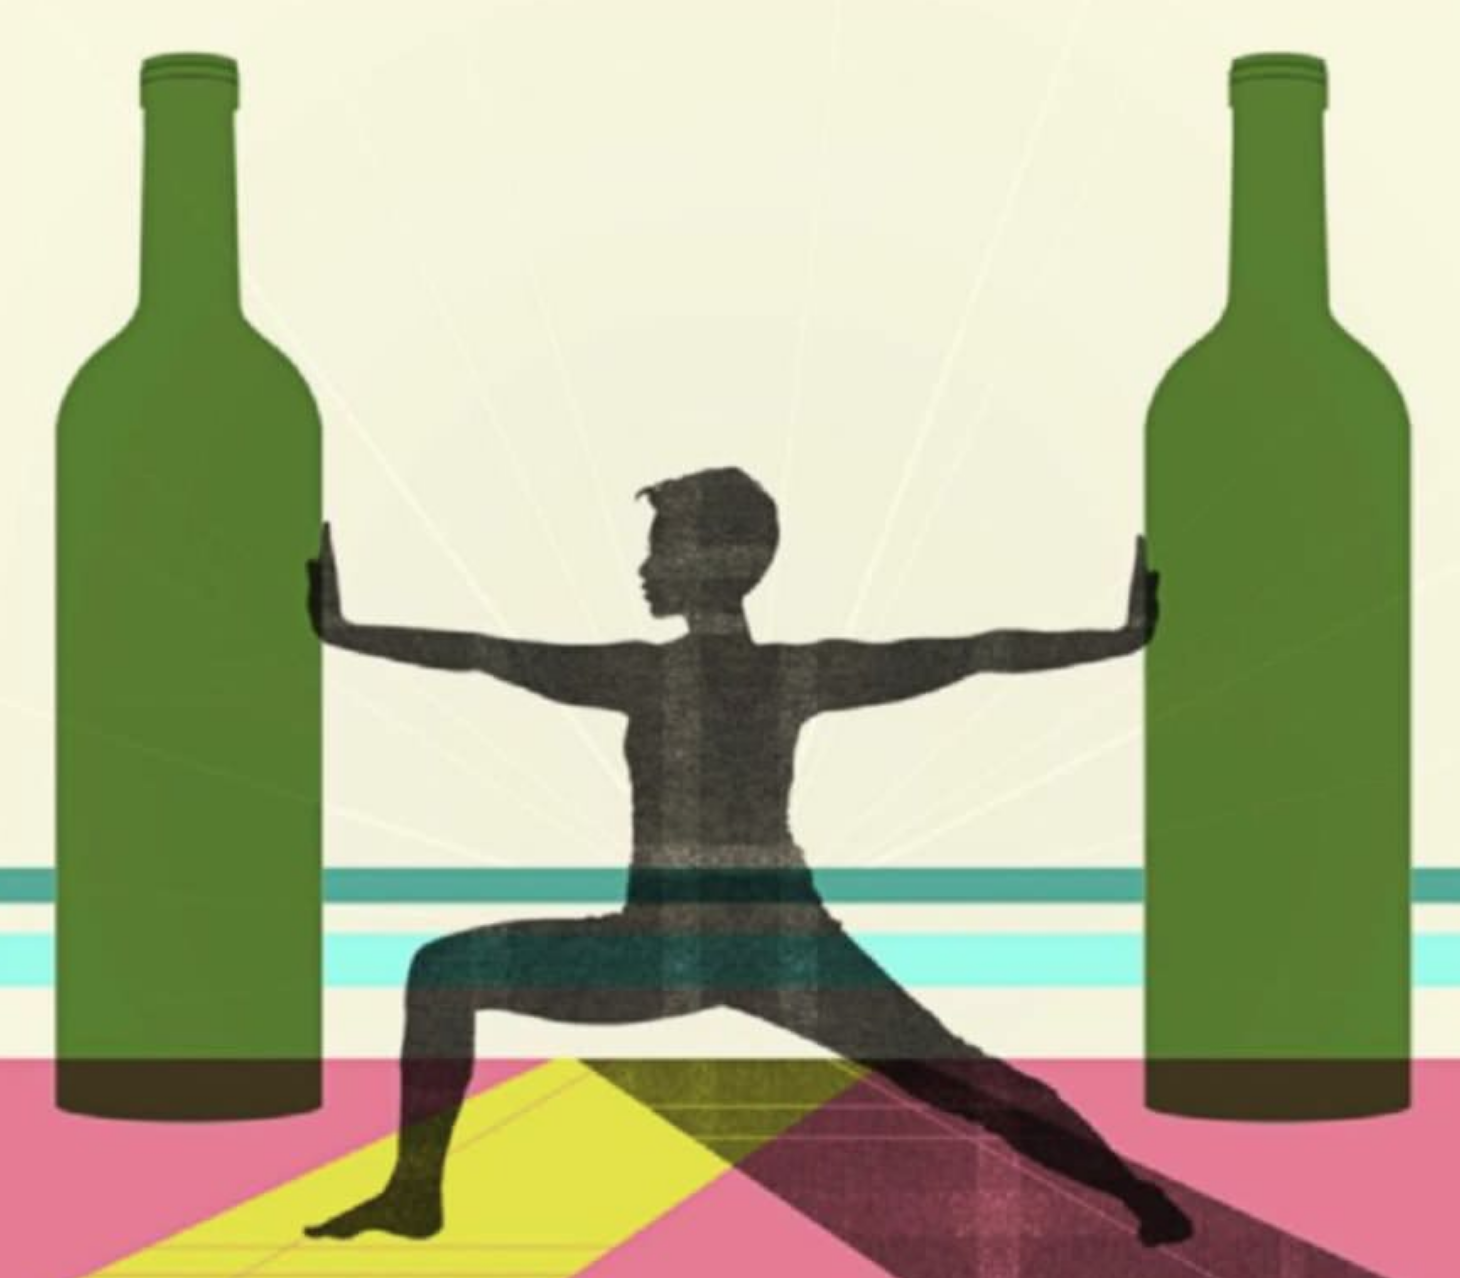 http://www.oprah.com/inspiration/the-benefits-of-yoga-for-recovering-addicts